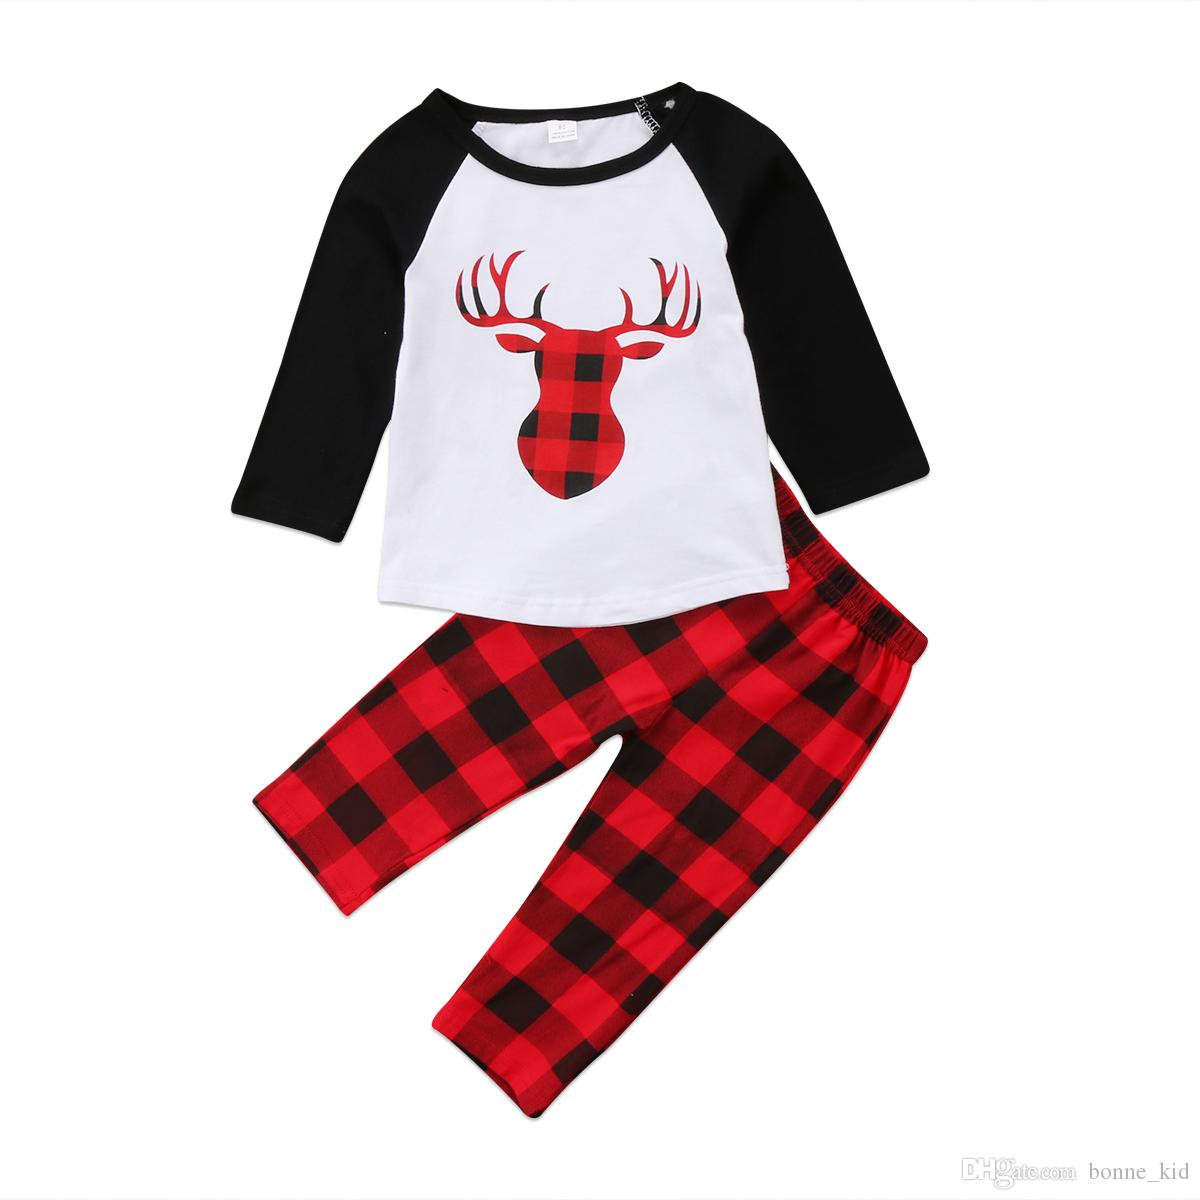 3949f2292a2d9 2019 Kid Baby Boys Girls Christmas Outfits Animals Reindeer Top Plaid Pants  Children Clothing Toddler Long Sleeve Boutique Kid Clothes From Bonne_kid,  ...